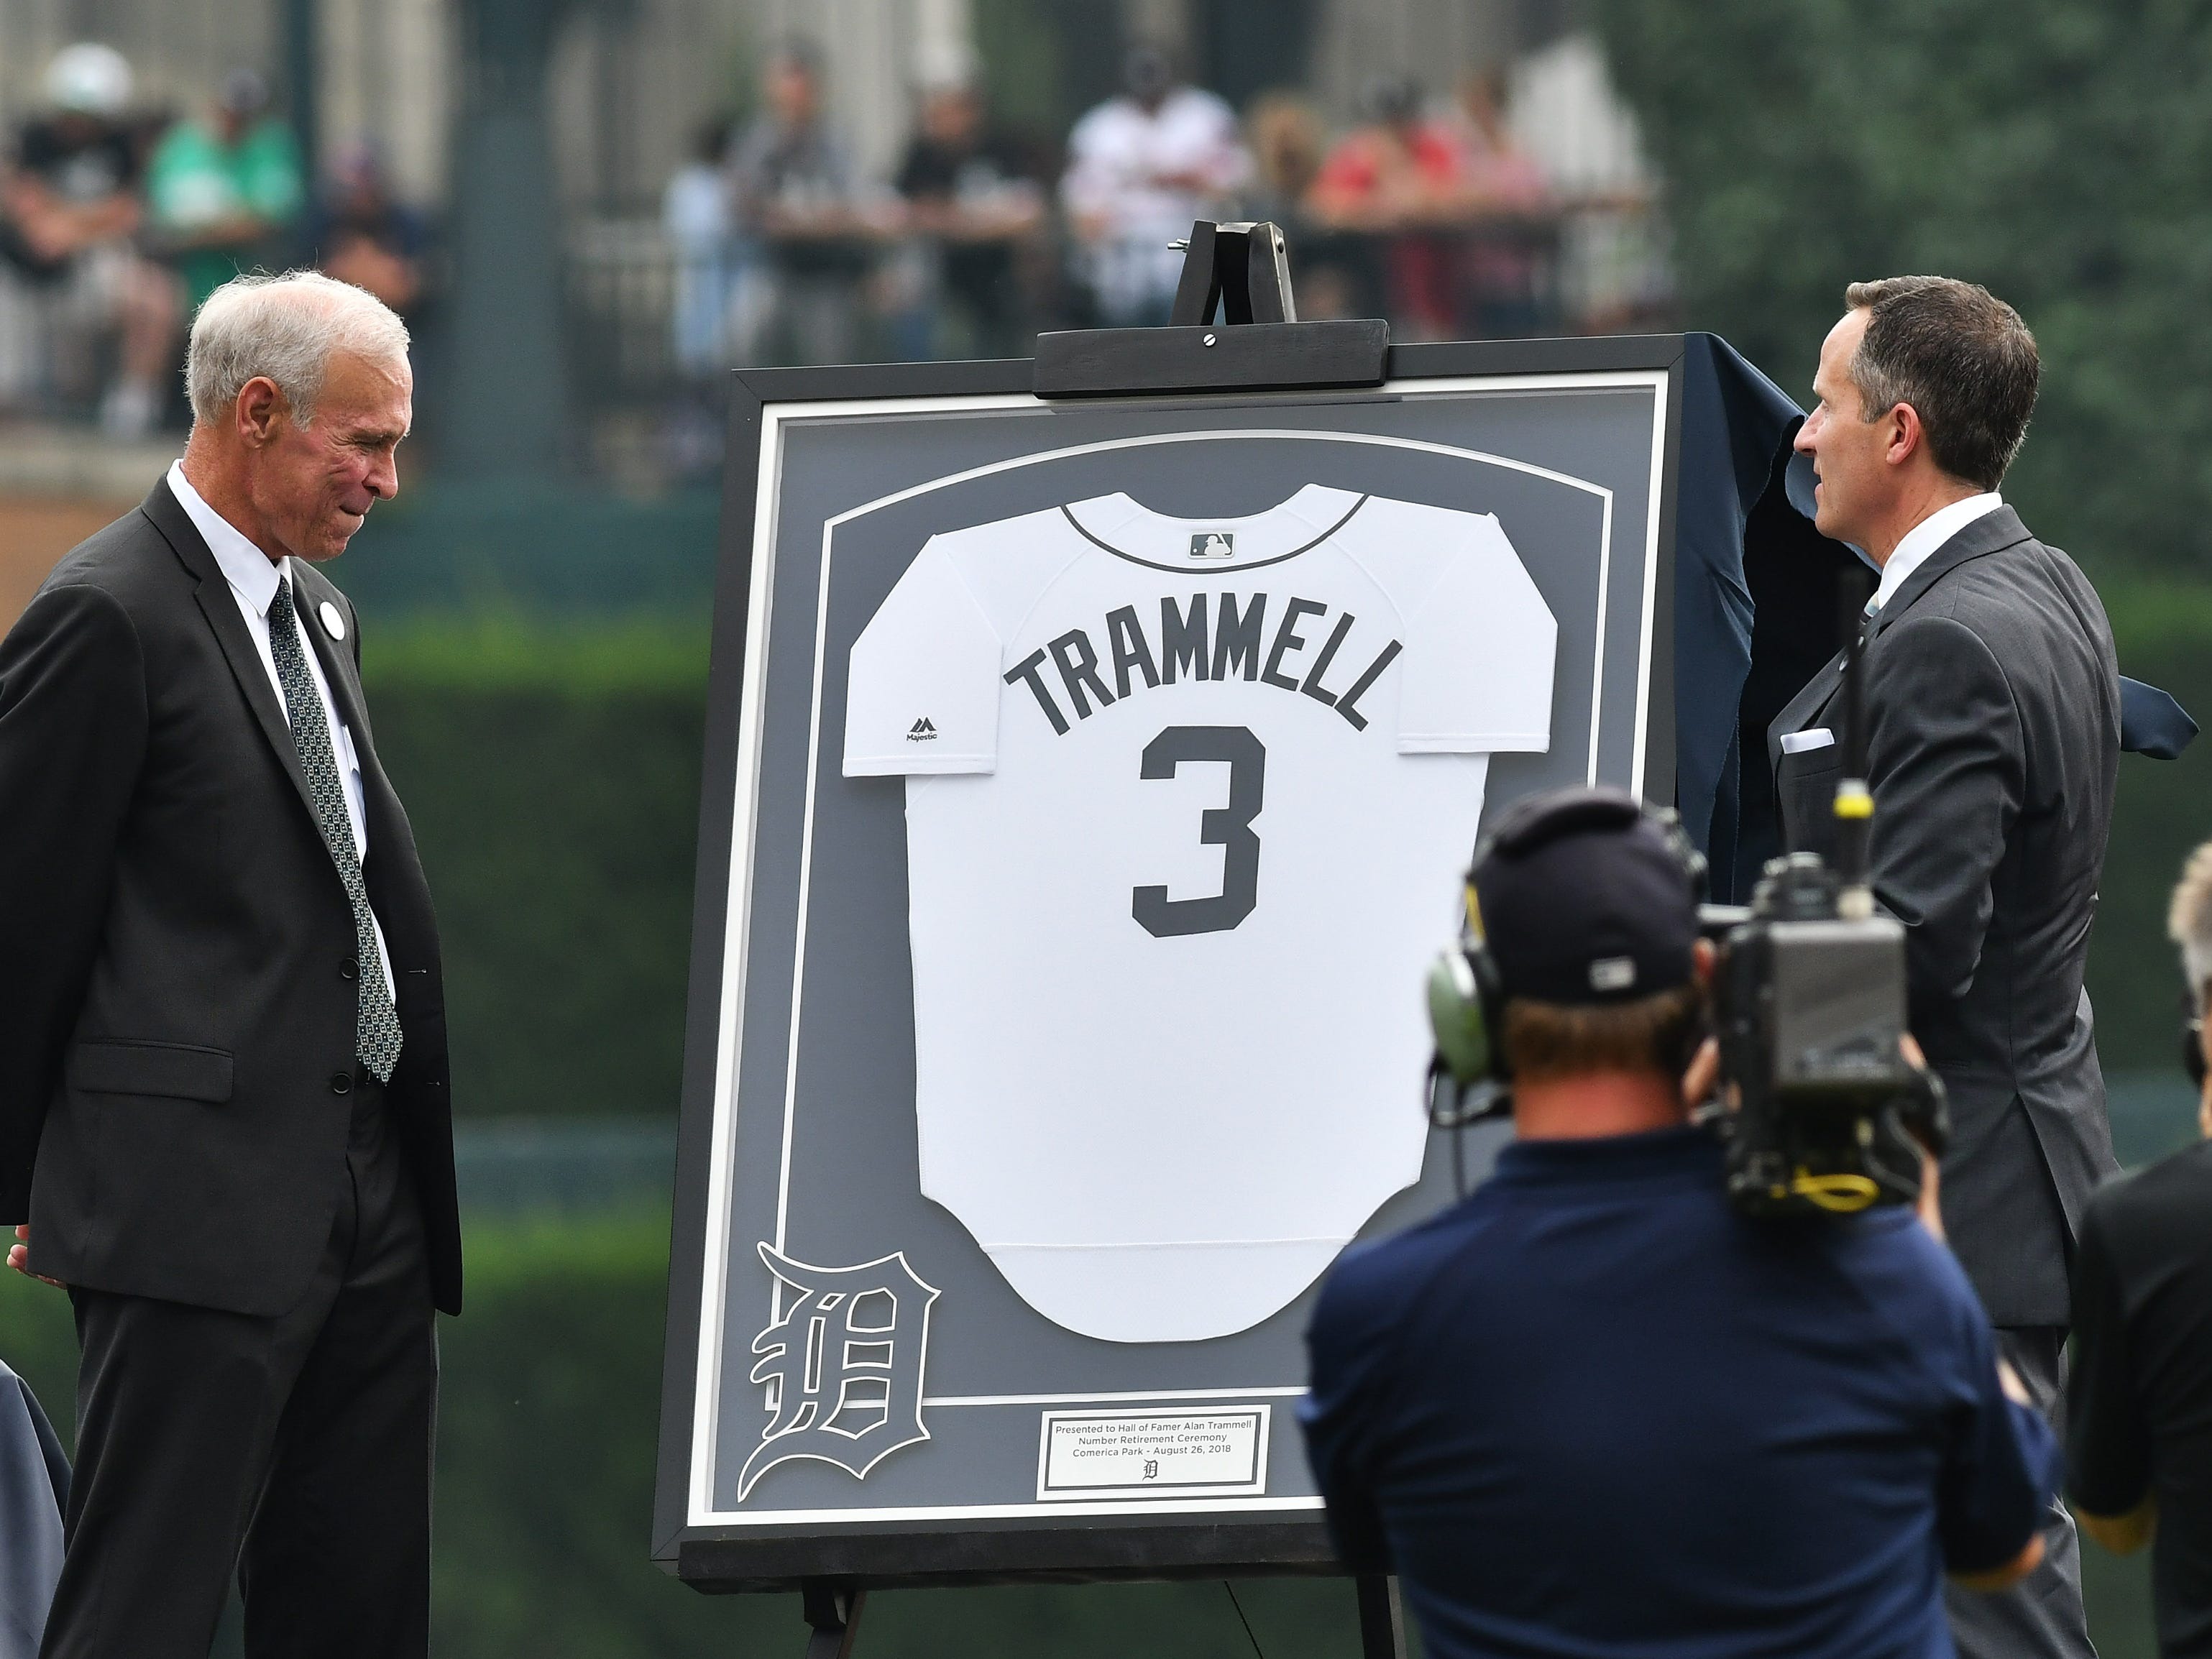 President and CEO of Ilitch Holdings, Inc. Chris Ilitch, right, presents Alan Trammell with a framed jersey and inscription during the ceremony.